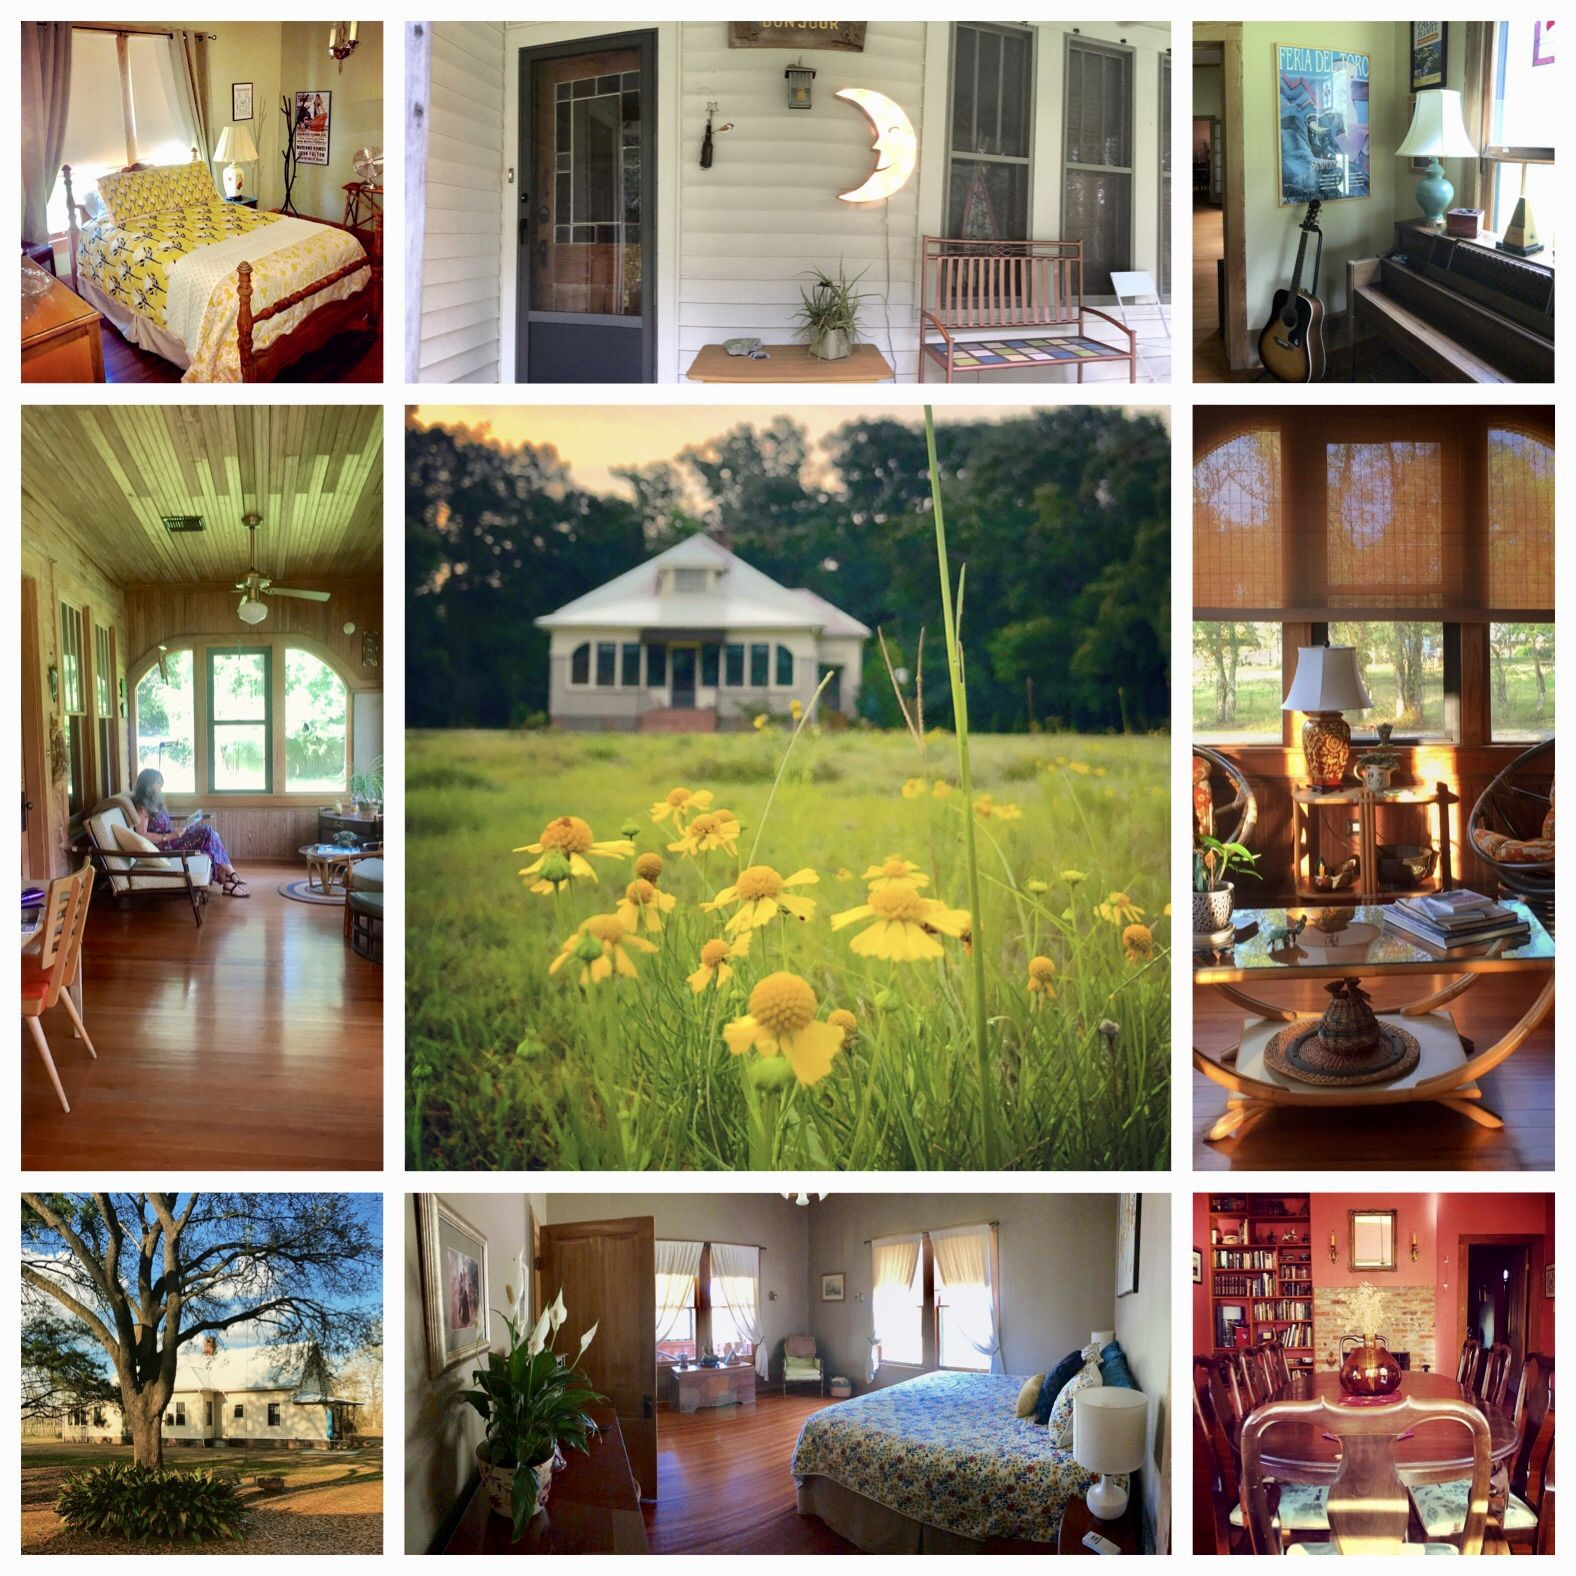 Bonne terre vacation rentals main house maine house